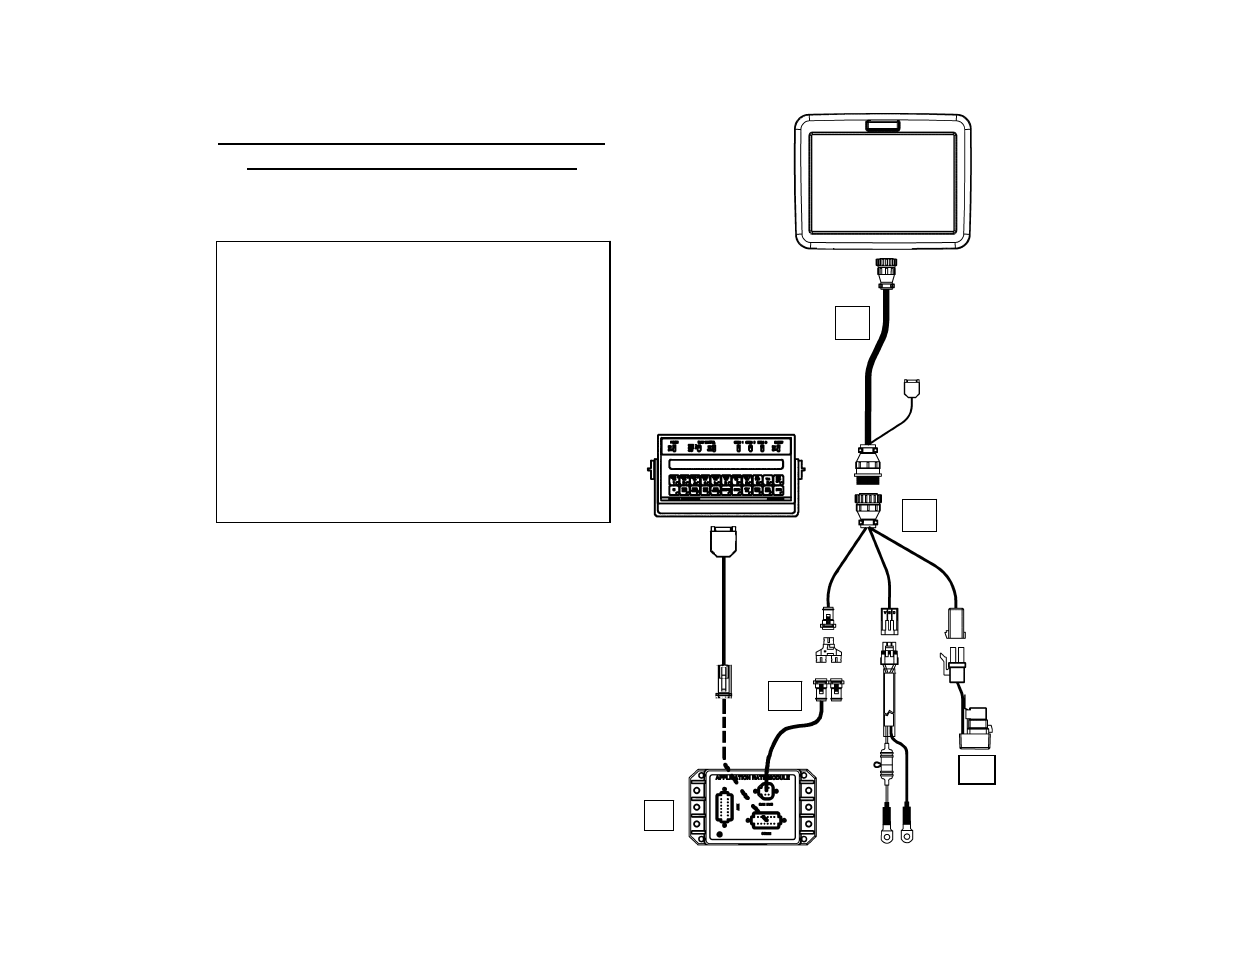 Raven Cable Wiring Diagrams Trusted Schematics Diagram Serial Port Ag Leader Insight Nl Mark V Sp6 User Manual 5 Pages Av Cables To Usb